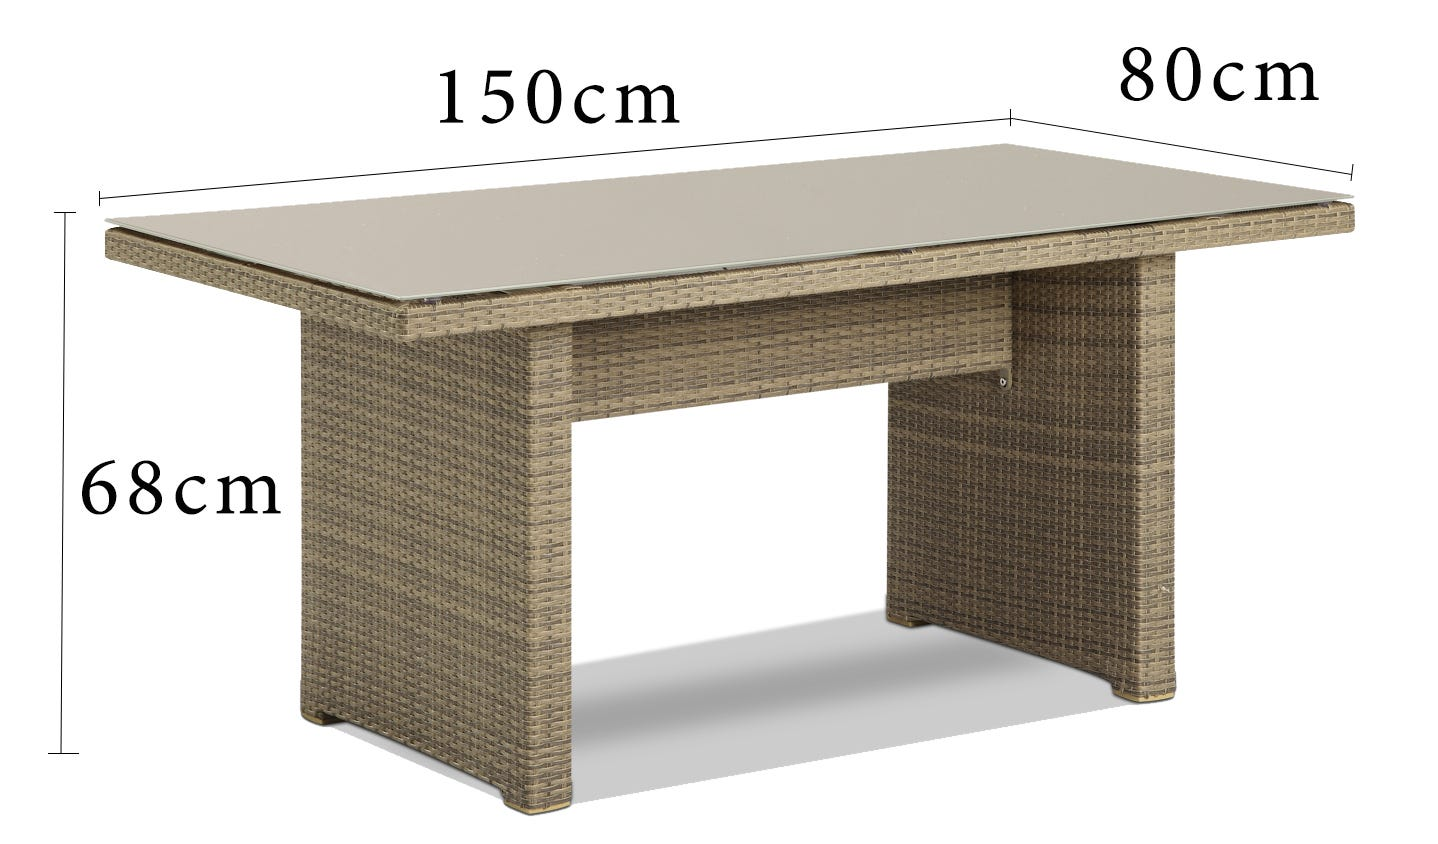 Incredible Outdoor Furniture Evolution Dining Out In Comfort Download Free Architecture Designs Scobabritishbridgeorg